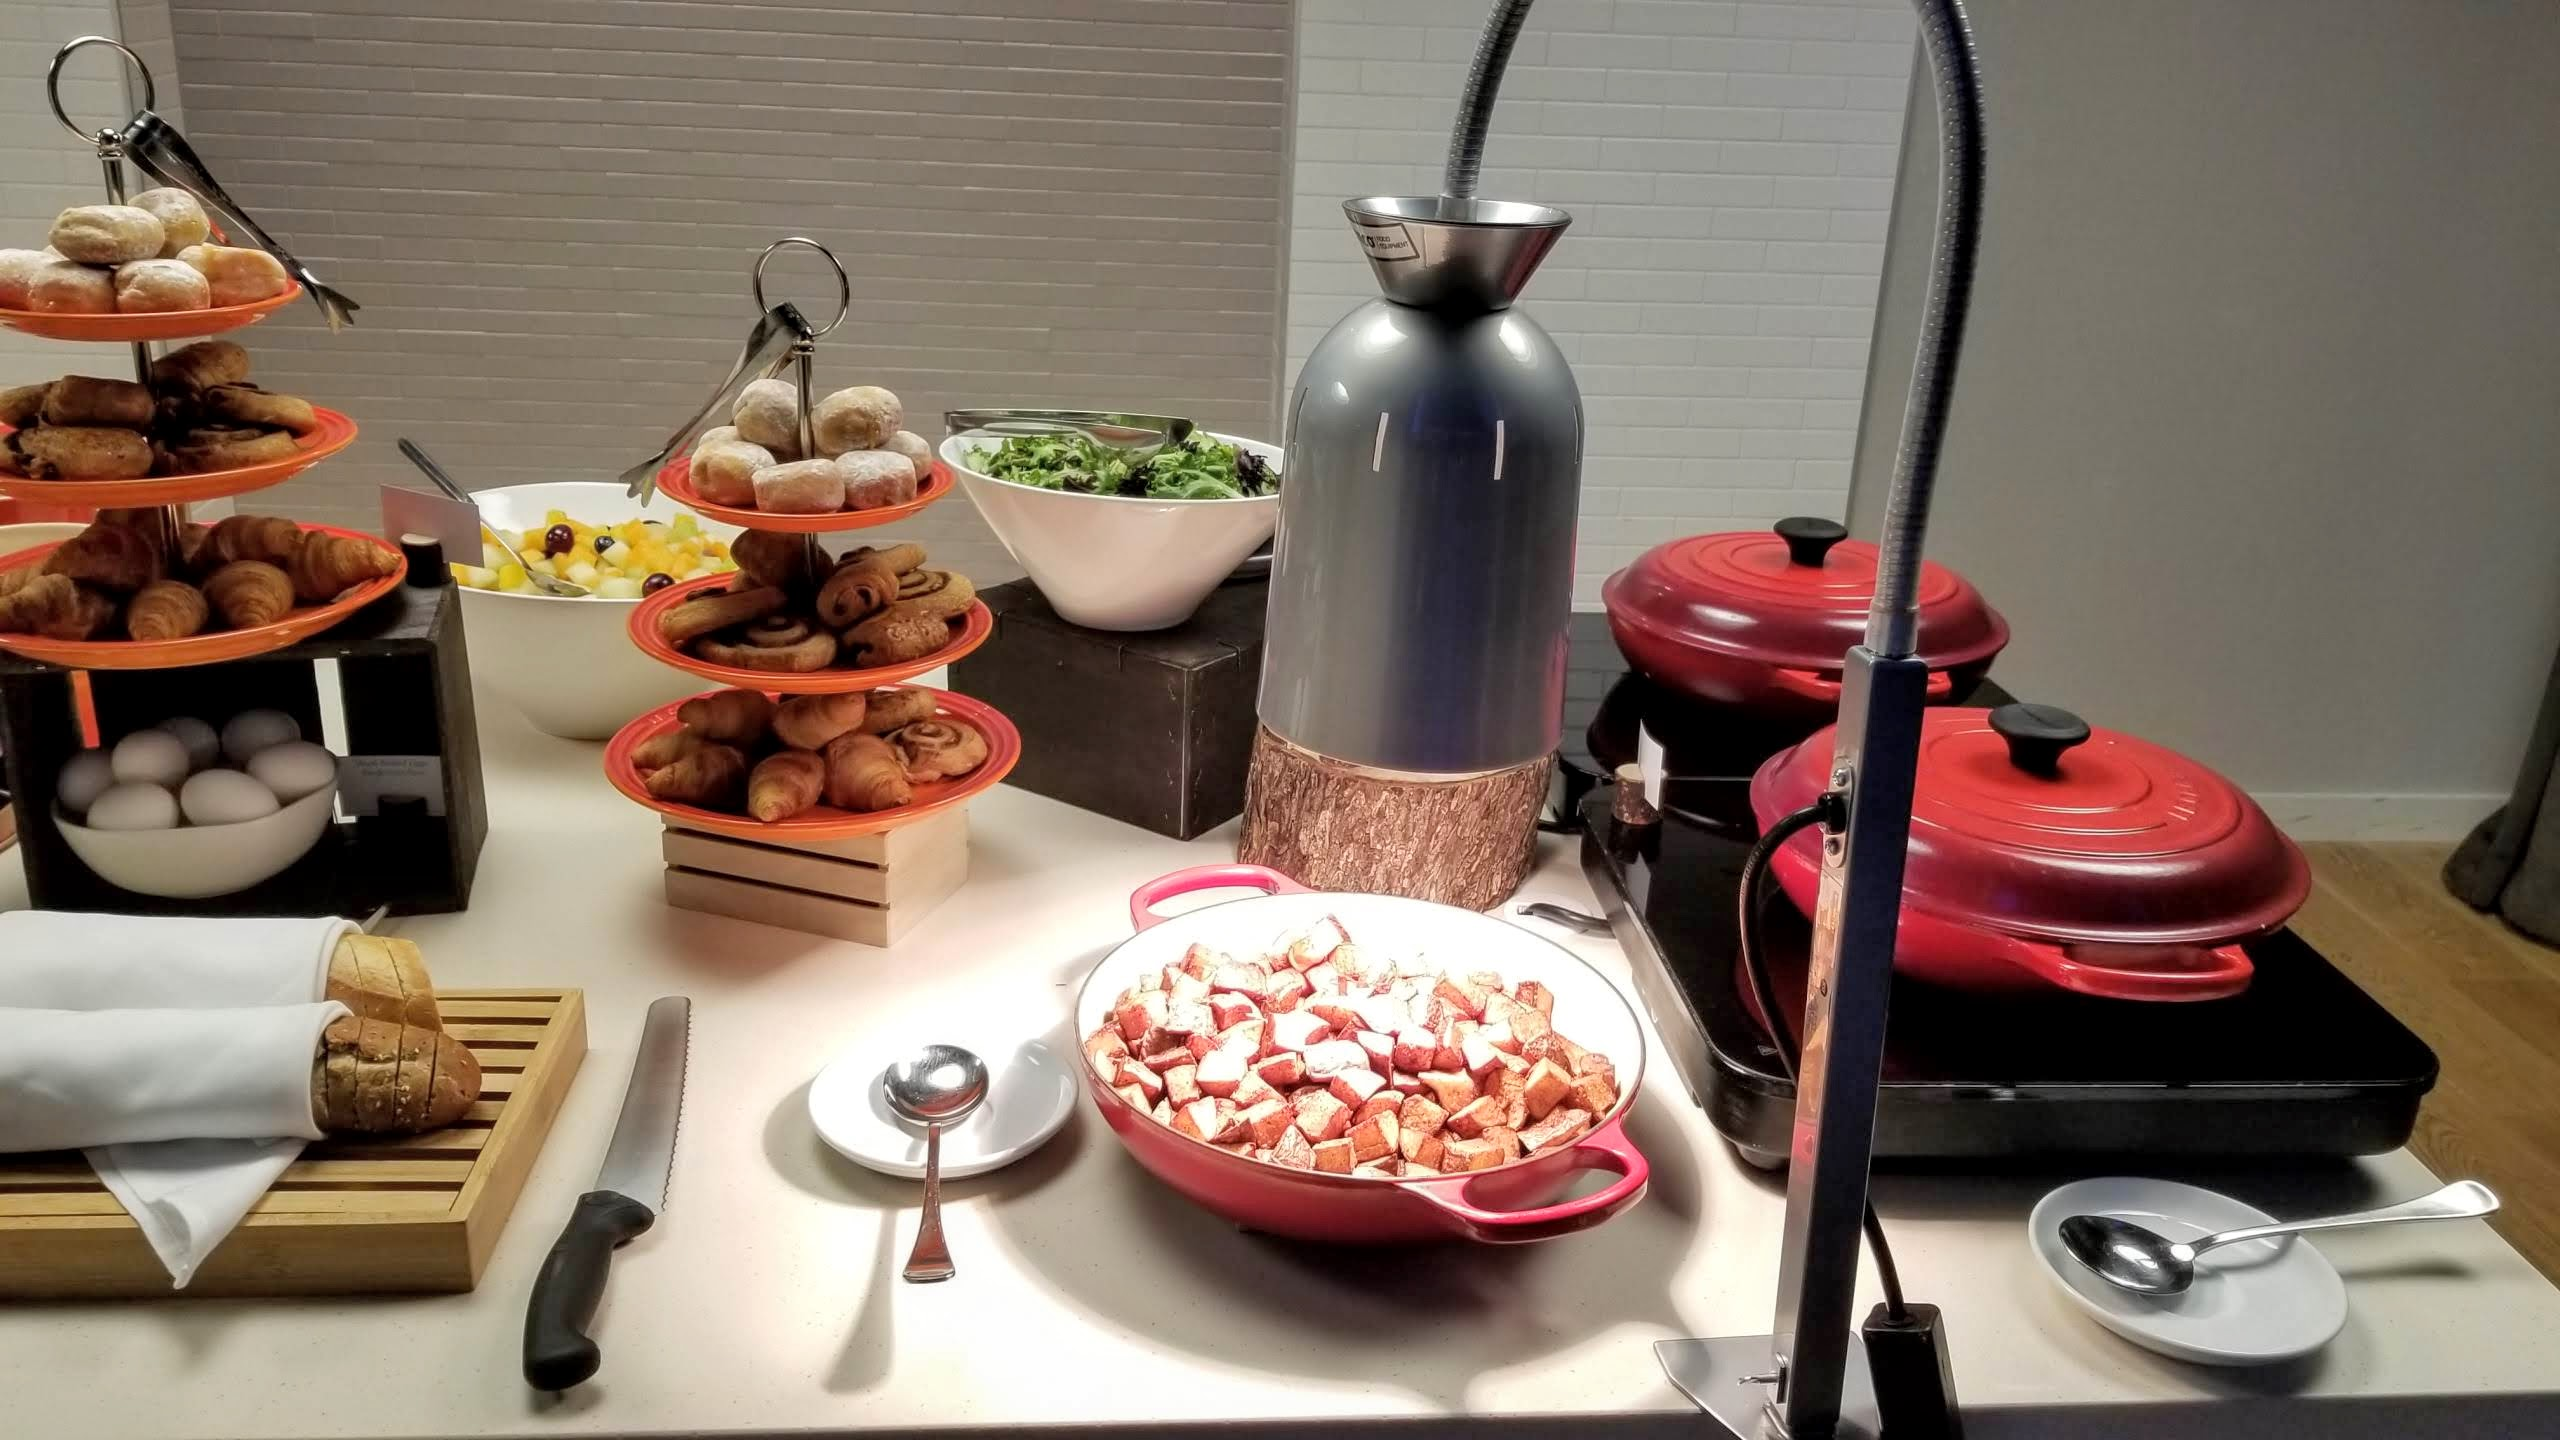 Food at the complimentary continental breakfast: potatoes, oatmeal, salad, fruit salad, and pastries